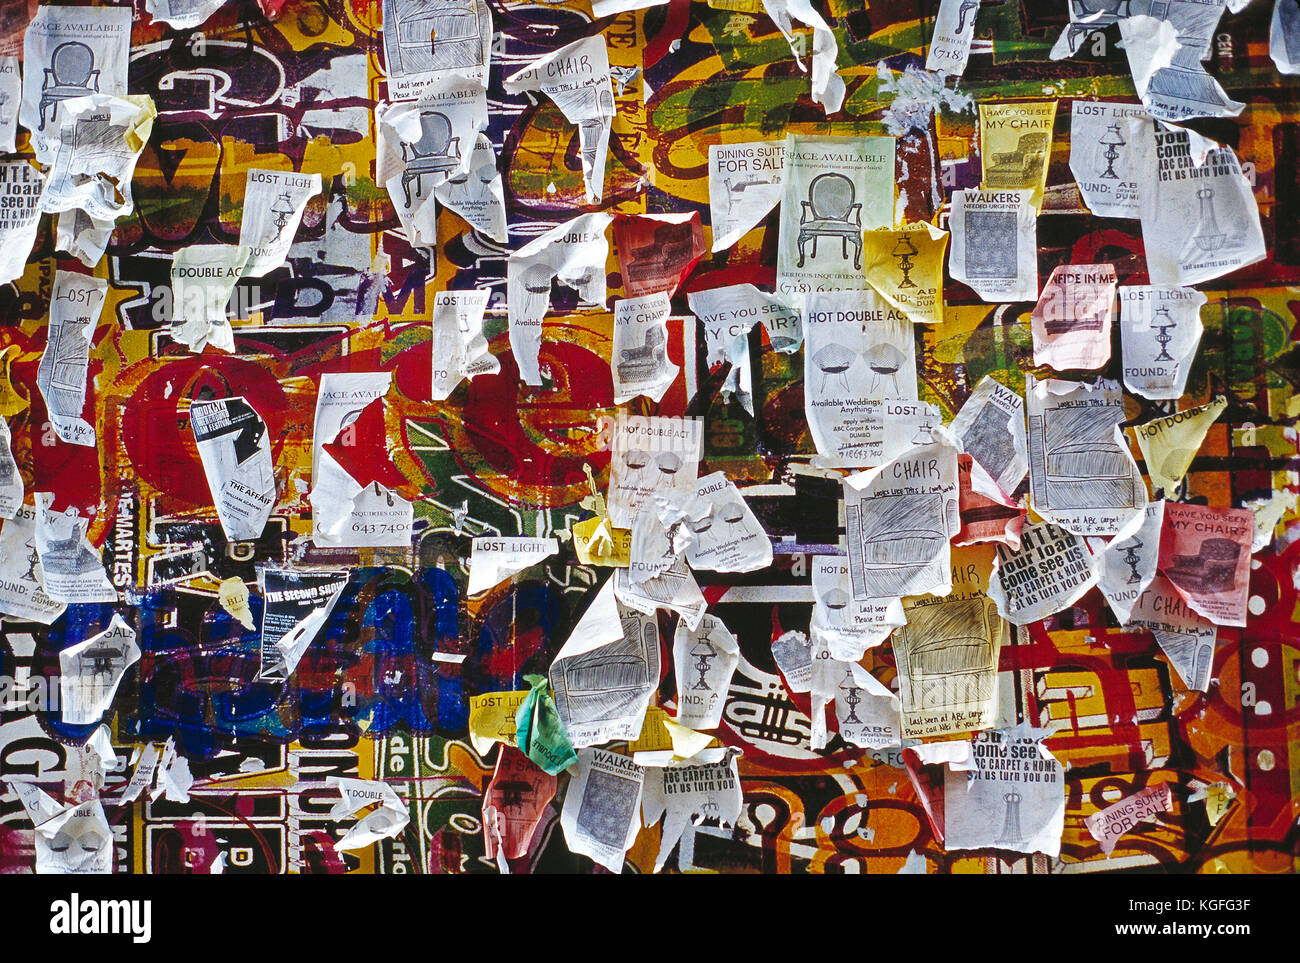 USA. New York. Wall of flyers for lost things. - Stock Image